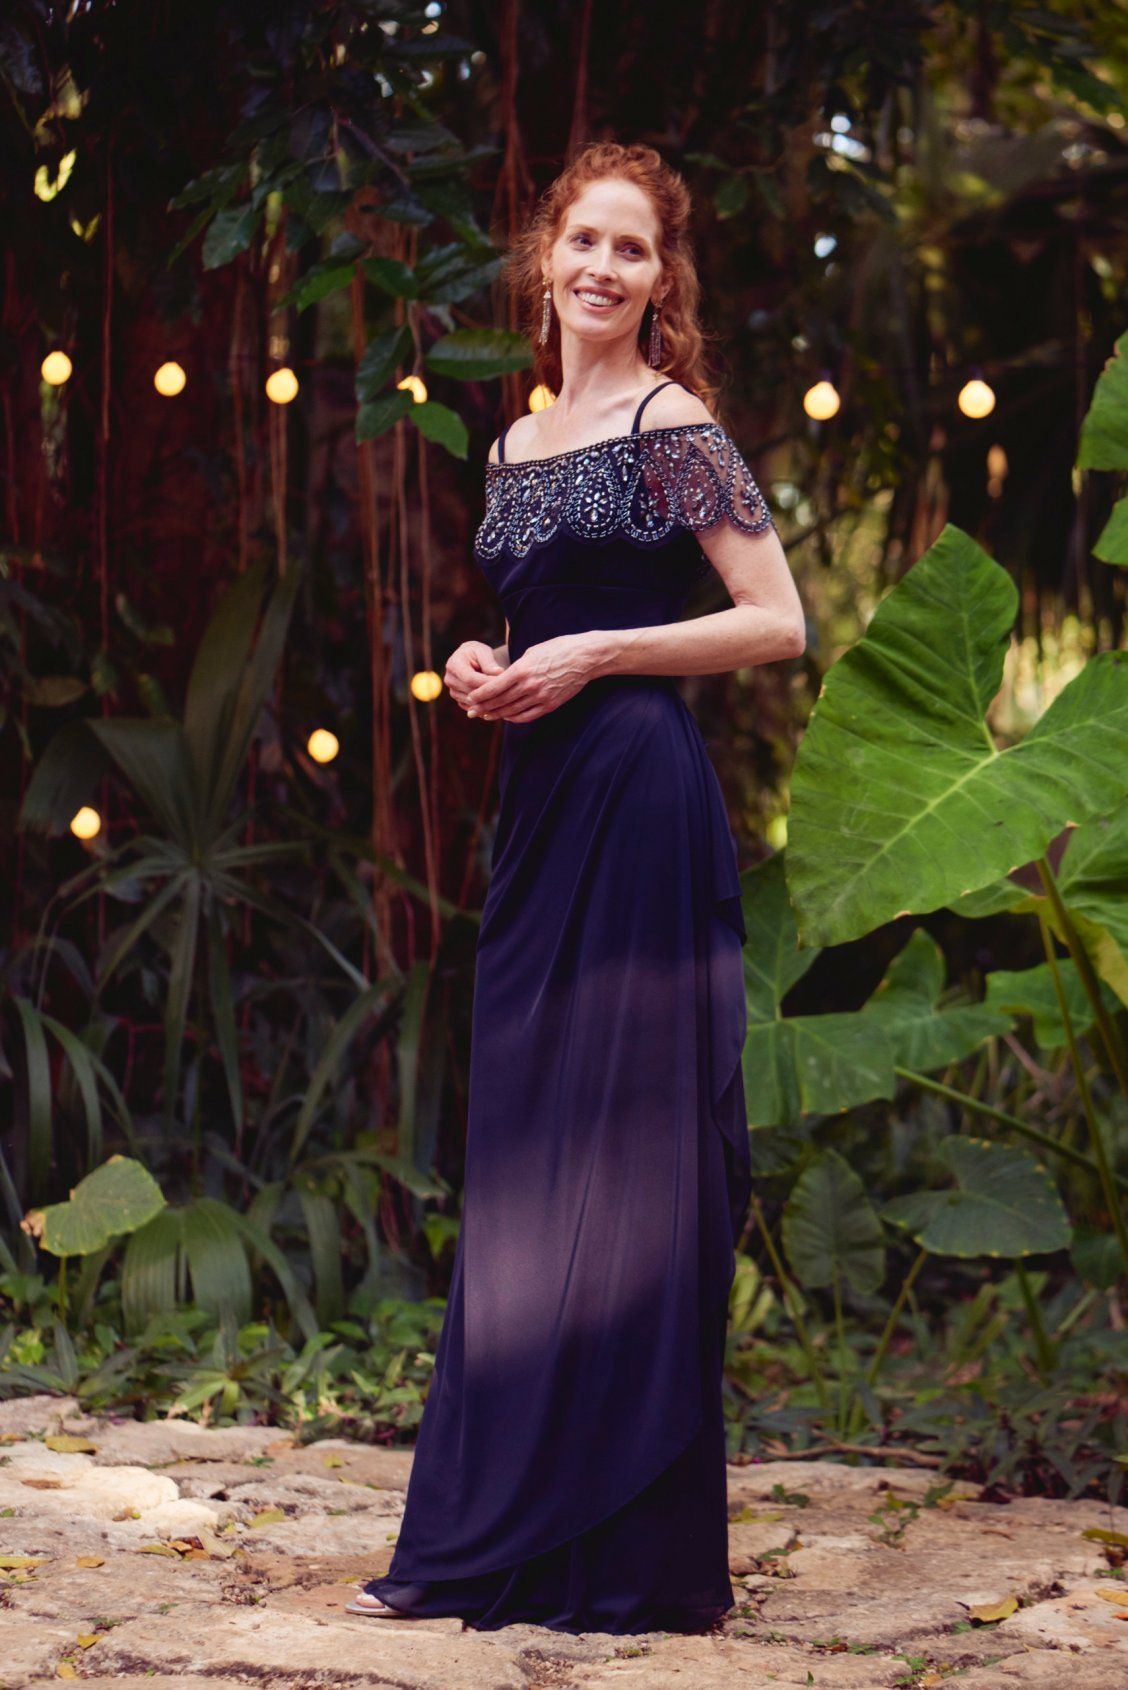 Navy off the shoulder beaded mother of the bride dress by Xscape     Navy off the shoulder beaded mother of the bride dress by Xscape from  David s